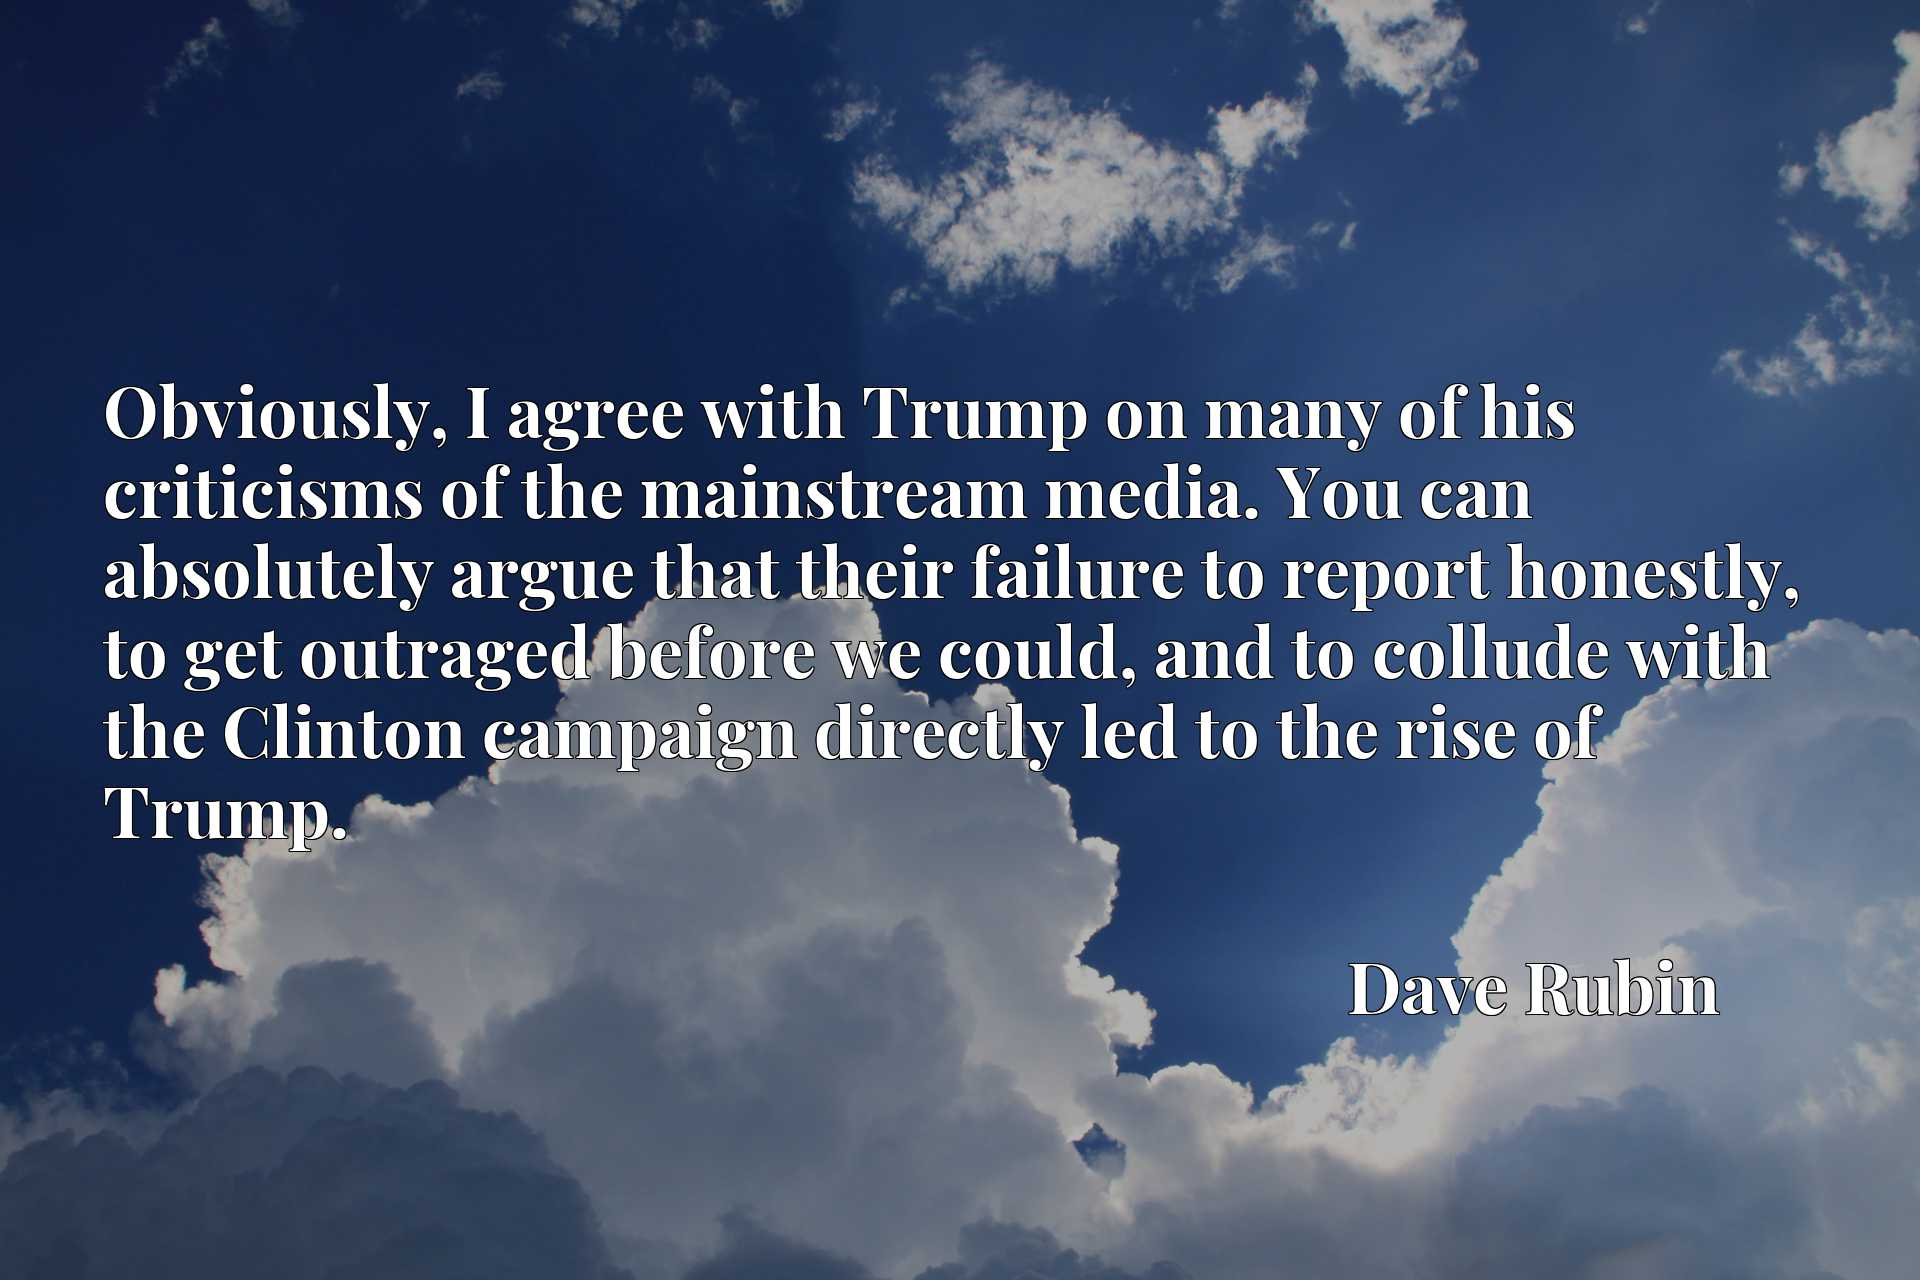 Obviously, I agree with Trump on many of his criticisms of the mainstream media. You can absolutely argue that their failure to report honestly, to get outraged before we could, and to collude with the Clinton campaign directly led to the rise of Trump.